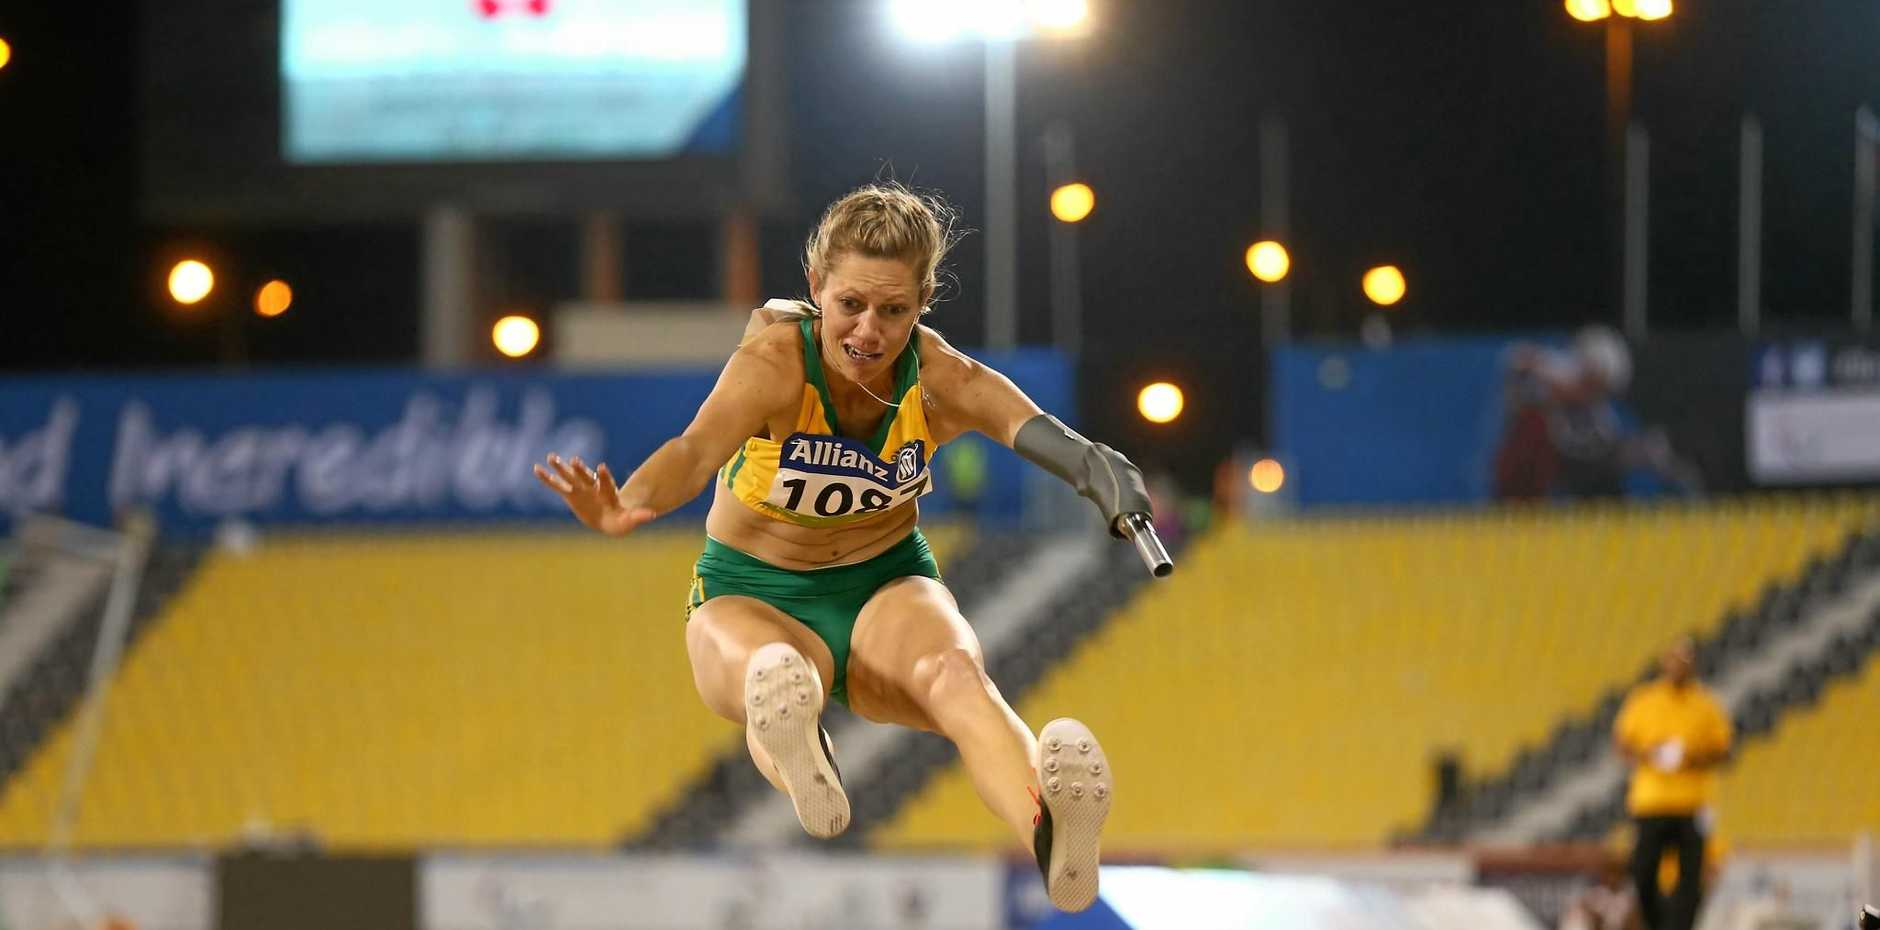 LEAP: Carlee Beattie has just started her competition at the Paralympics.